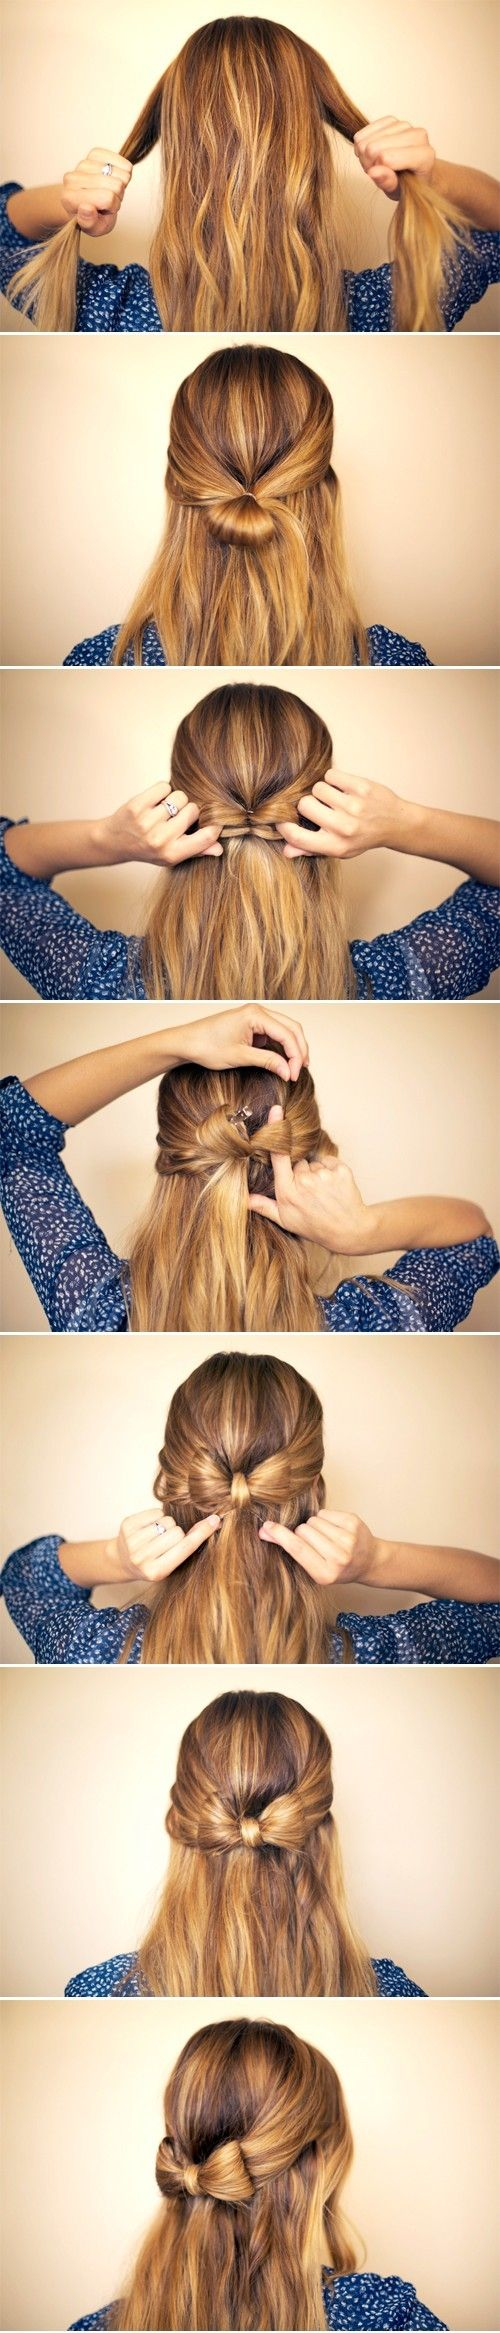 How To: Hair Bow                                          by HananhX